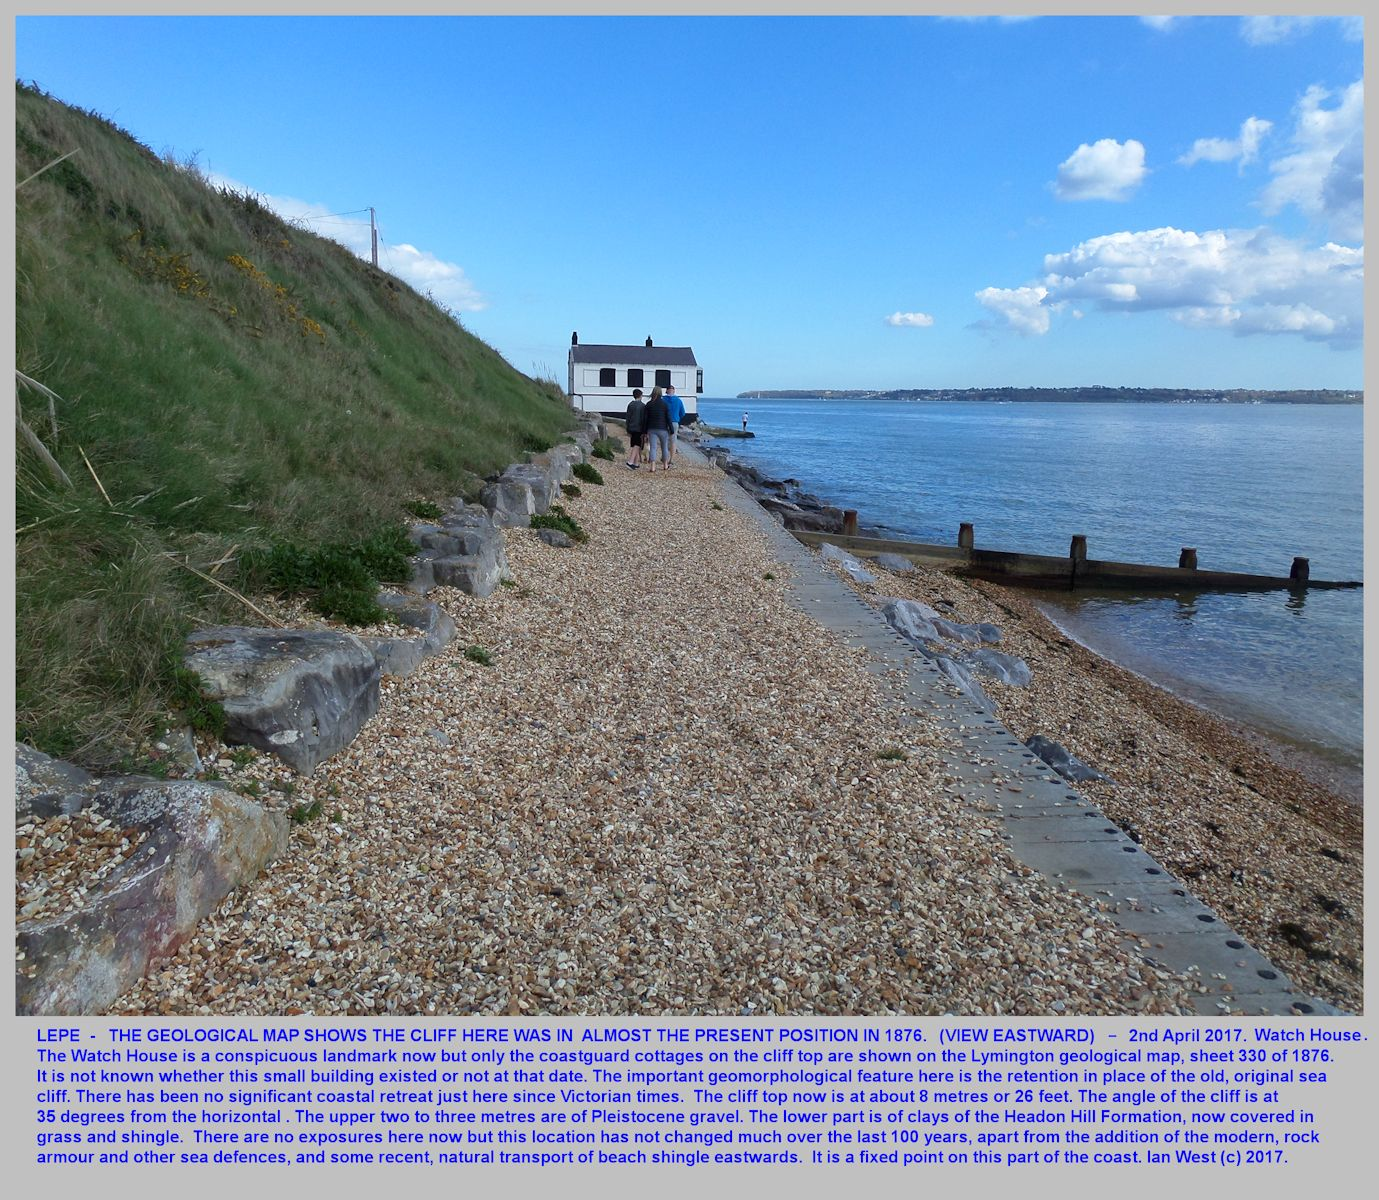 At Lepe, Hampshire, a view eastward towards the Watch House, and showing the old cliff, still fairly steep but overgrown, 2nd May 2017